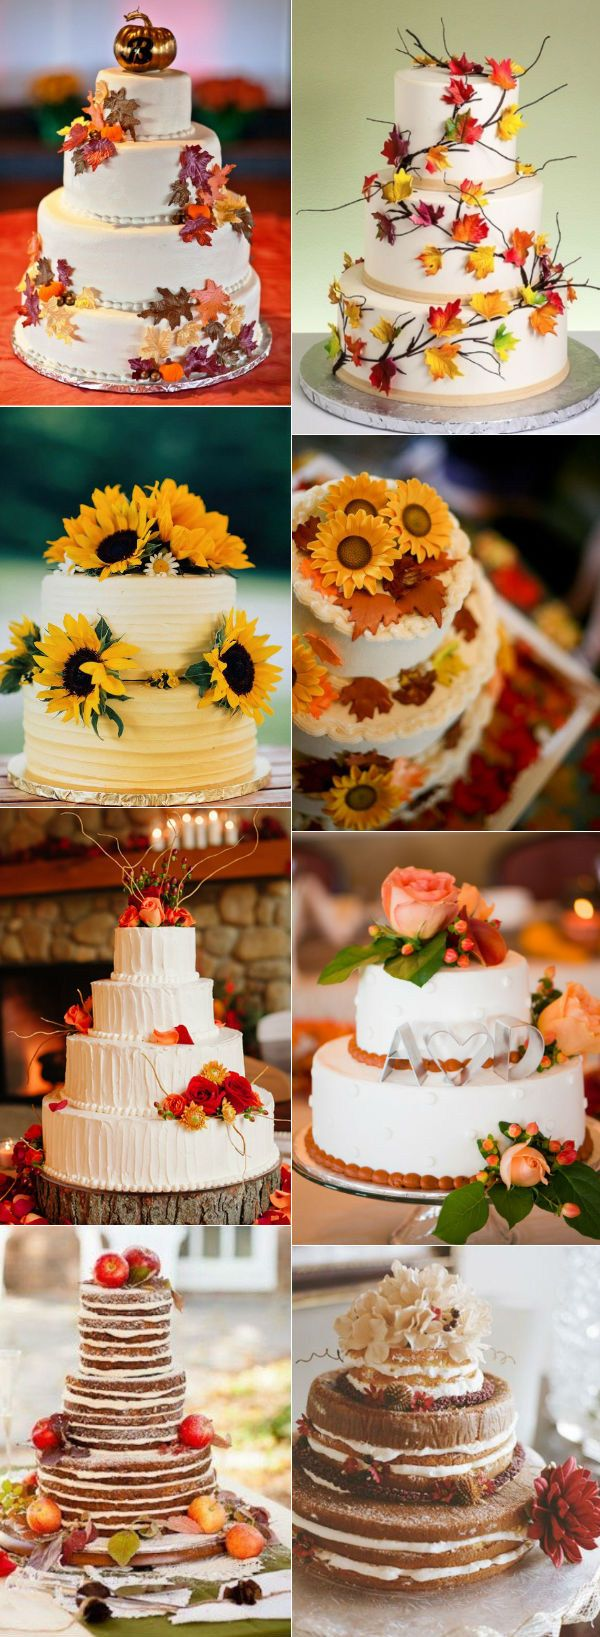 The blue cake company wedding cakes birthday cakes 2016 car release - Awesome Rustic Fall Wedding Cakes